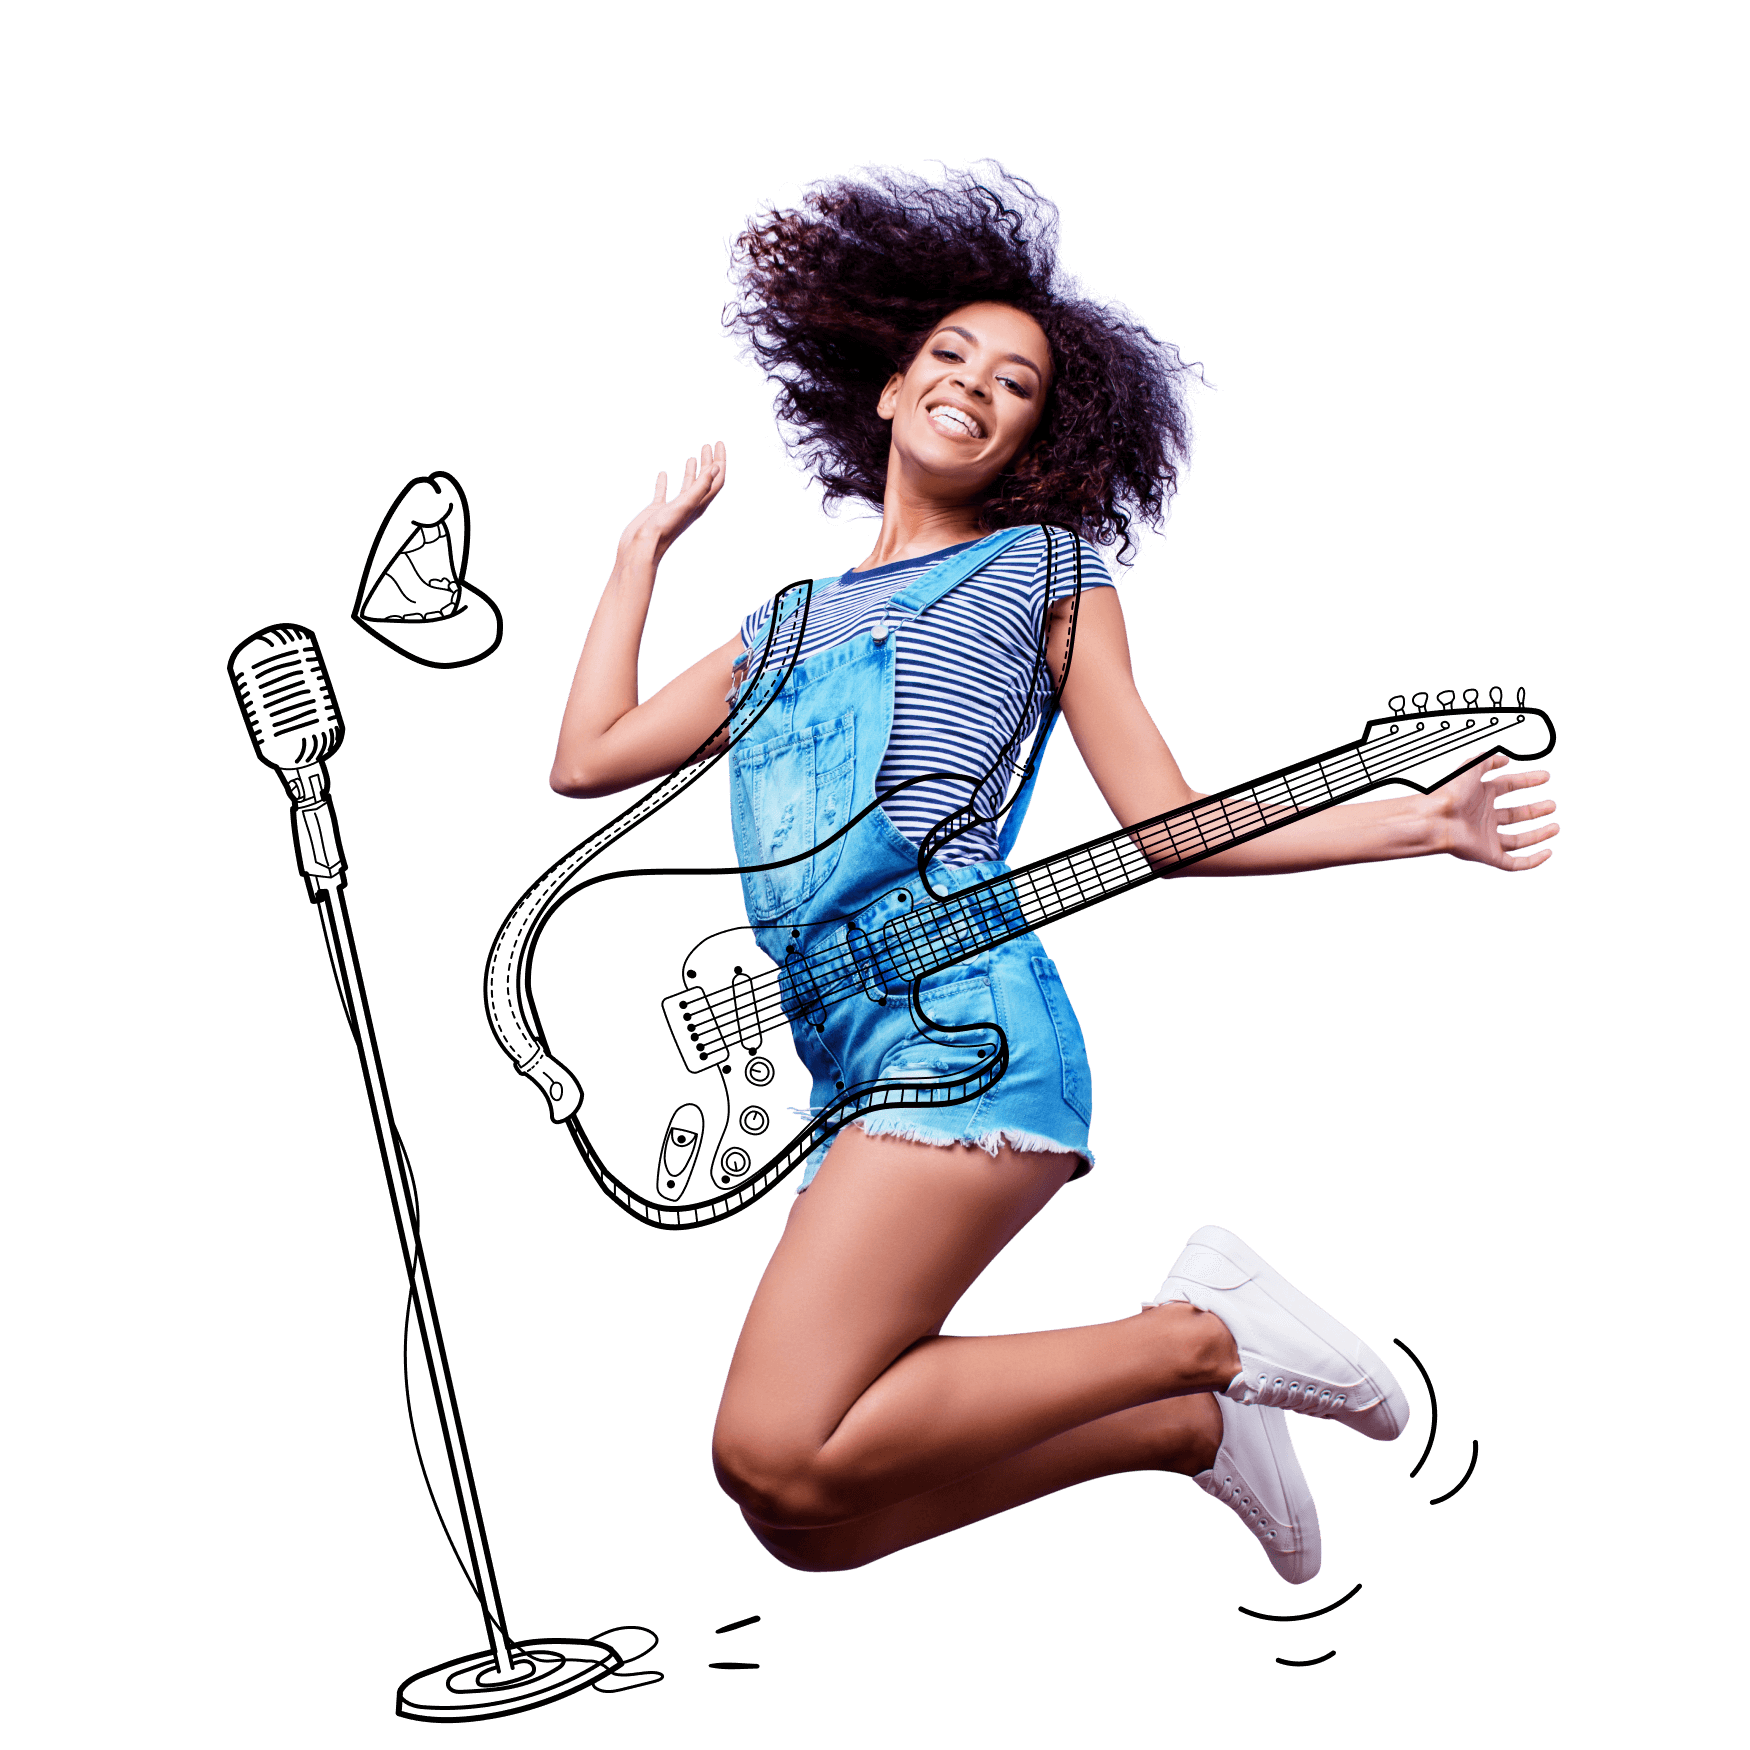 Young singer jumping in the air, with illustrated guitar and microphone.